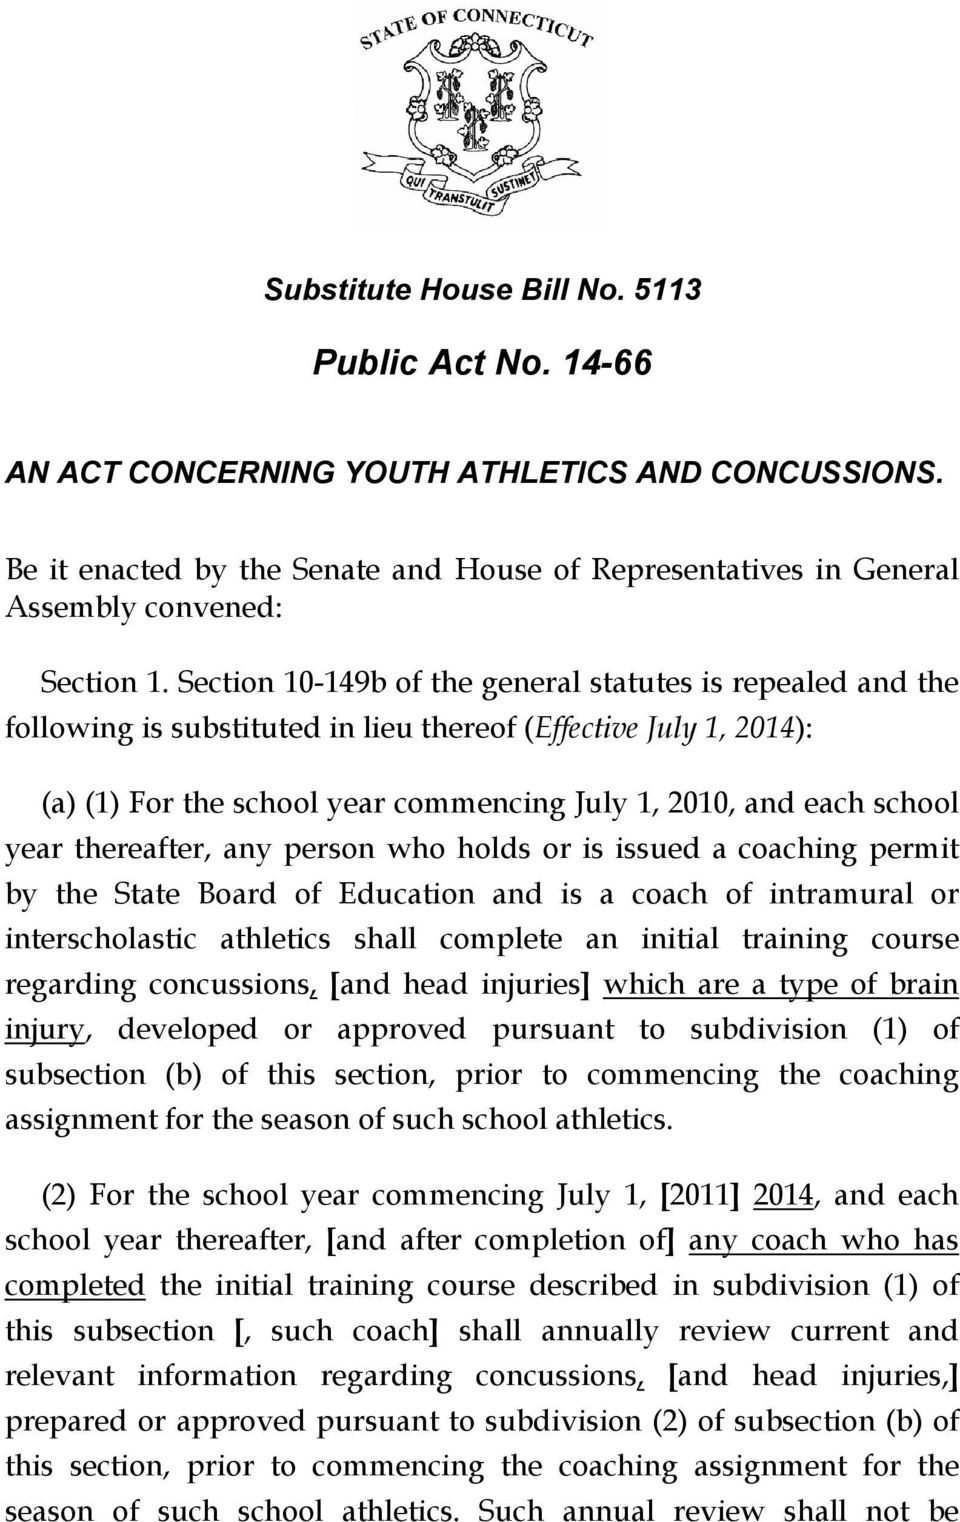 year thereafter, any person who holds or is issued a coaching permit by the State Board of Education and is a coach of intramural or interscholastic athletics shall complete an initial training